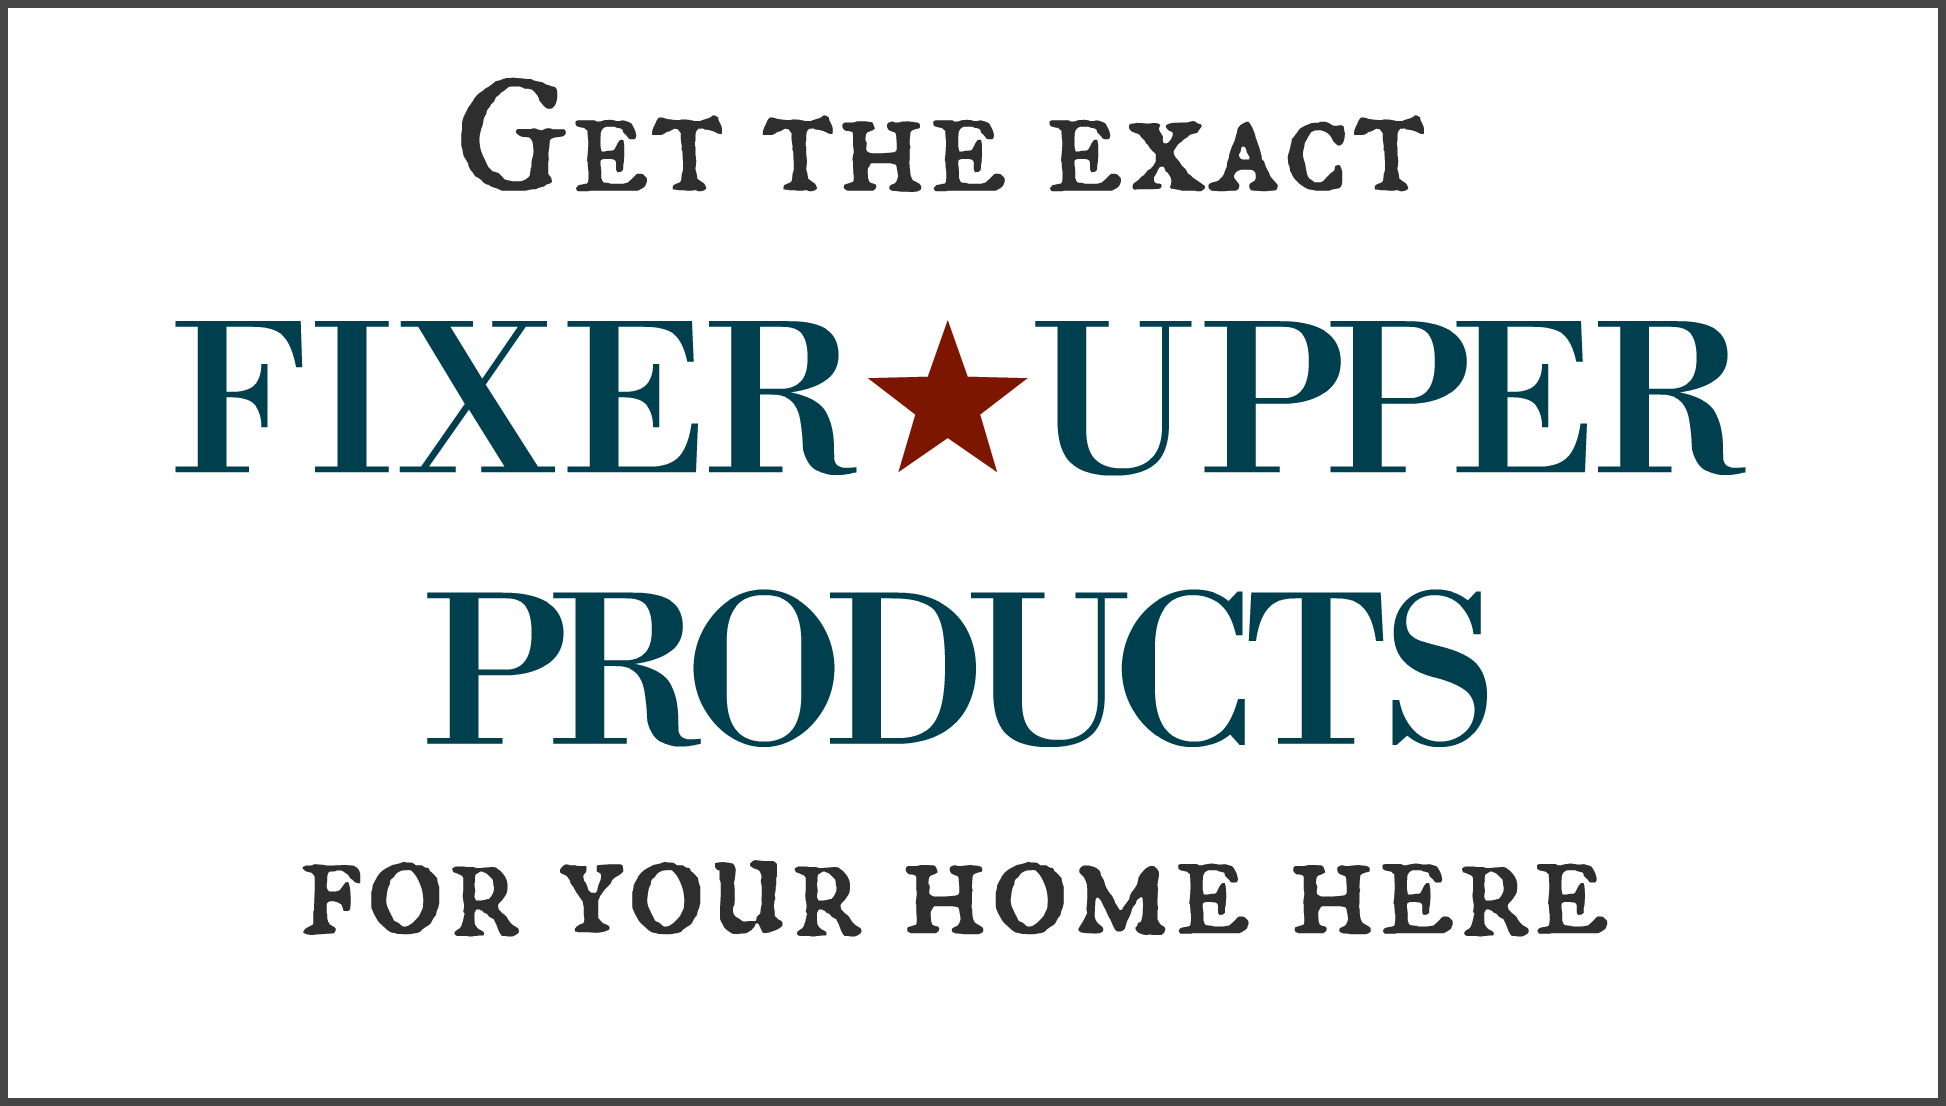 Exact Fixer Upper Products For Your Home